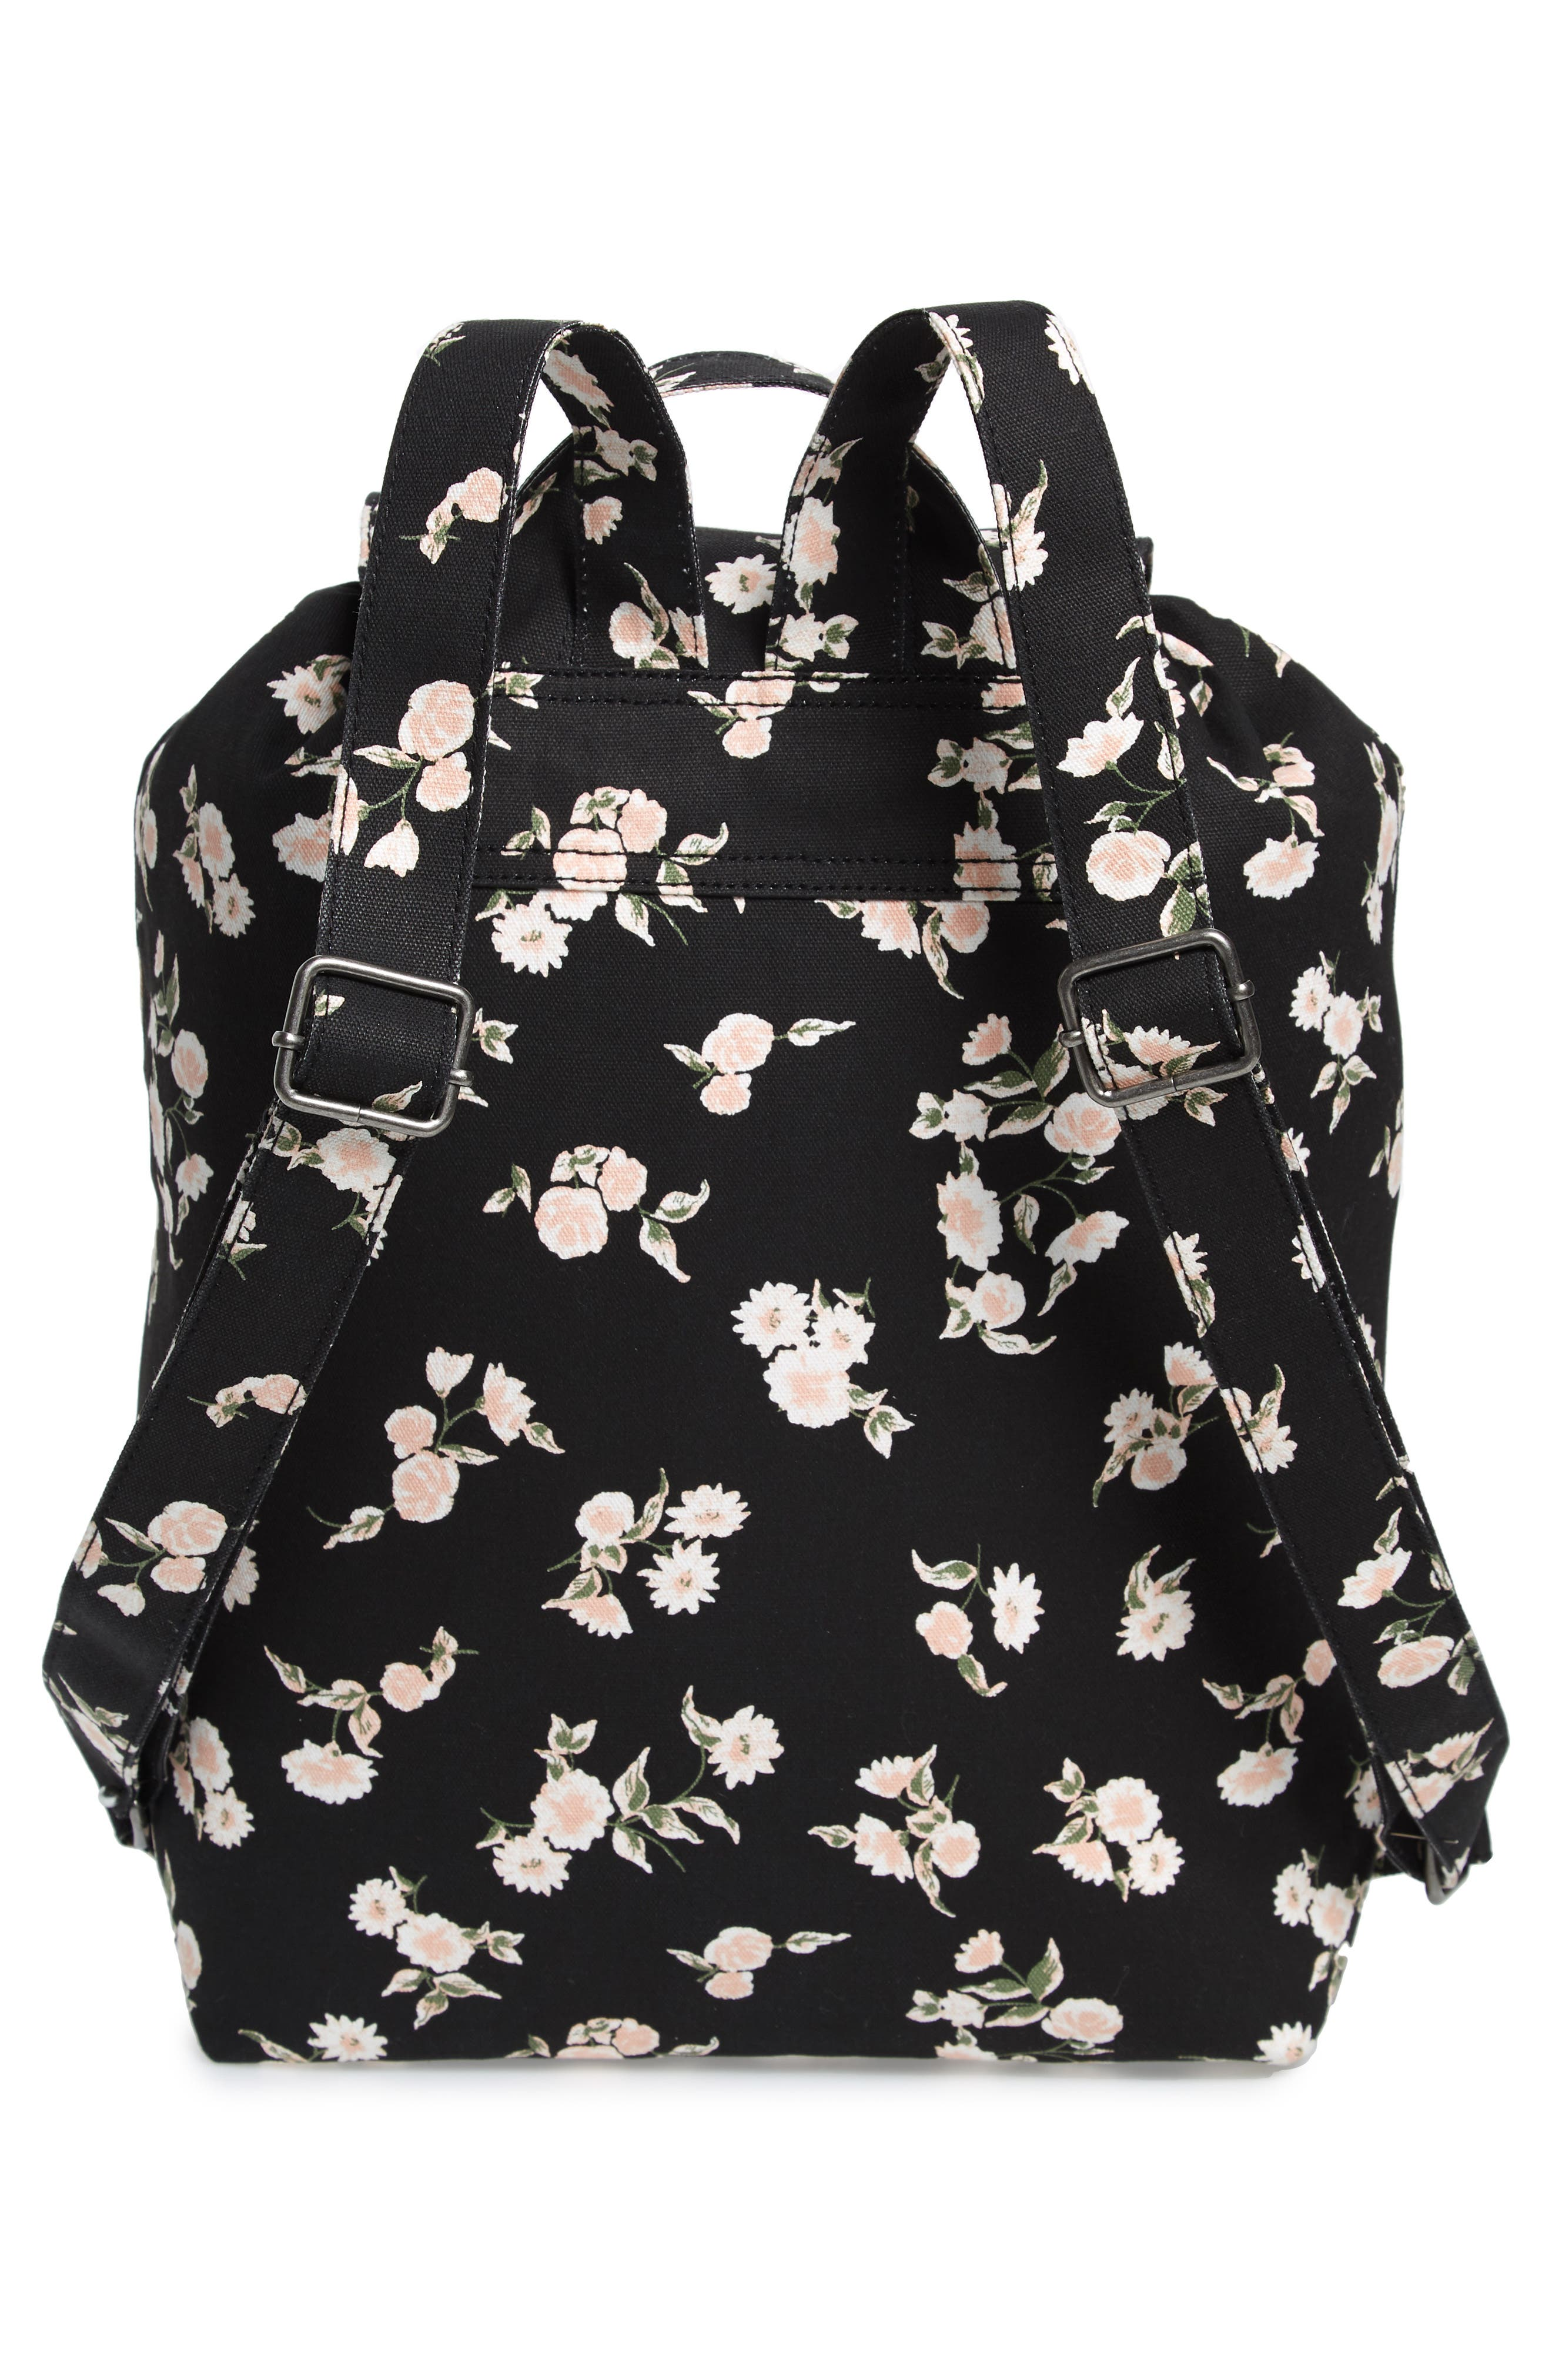 Lakeside Floral Print Backpack,                             Alternate thumbnail 3, color,                             001